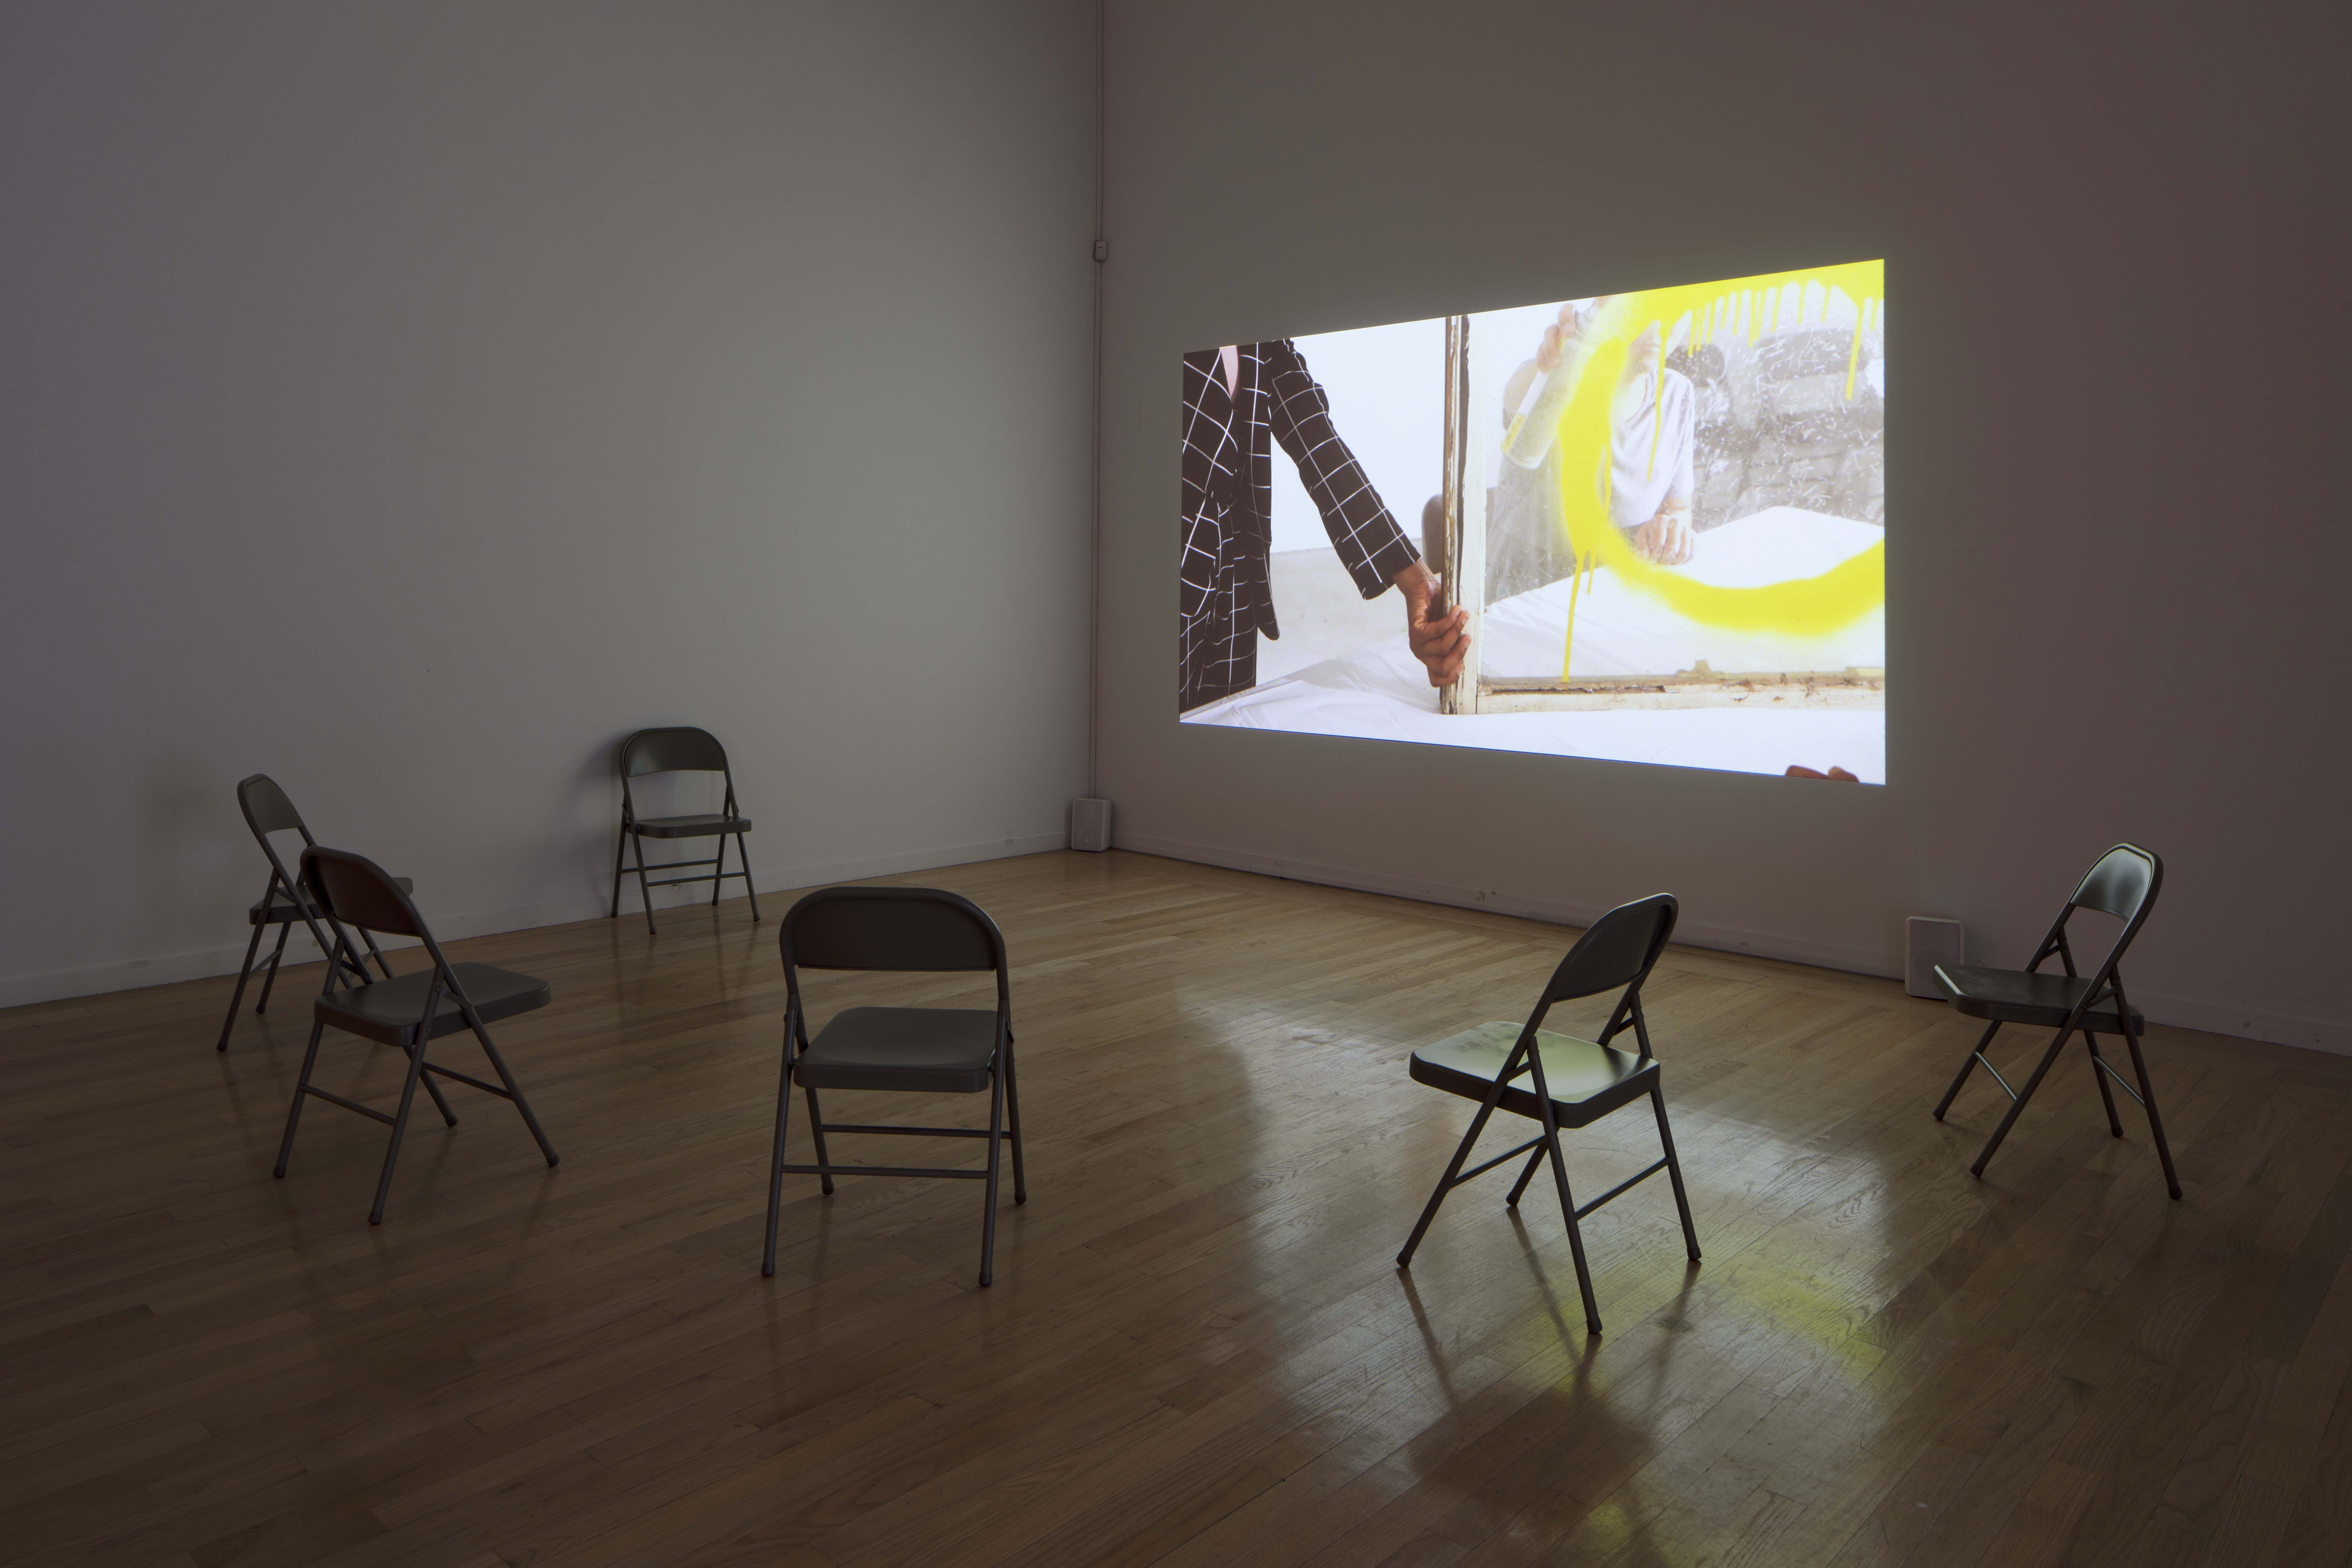 Installation view, Jibade-Khalil Huffman: Now That I Can Dance, 2021, Tufts University Art Galleries, Tufts University, Medford, MA, 2020.  Photography by Peter Harris.